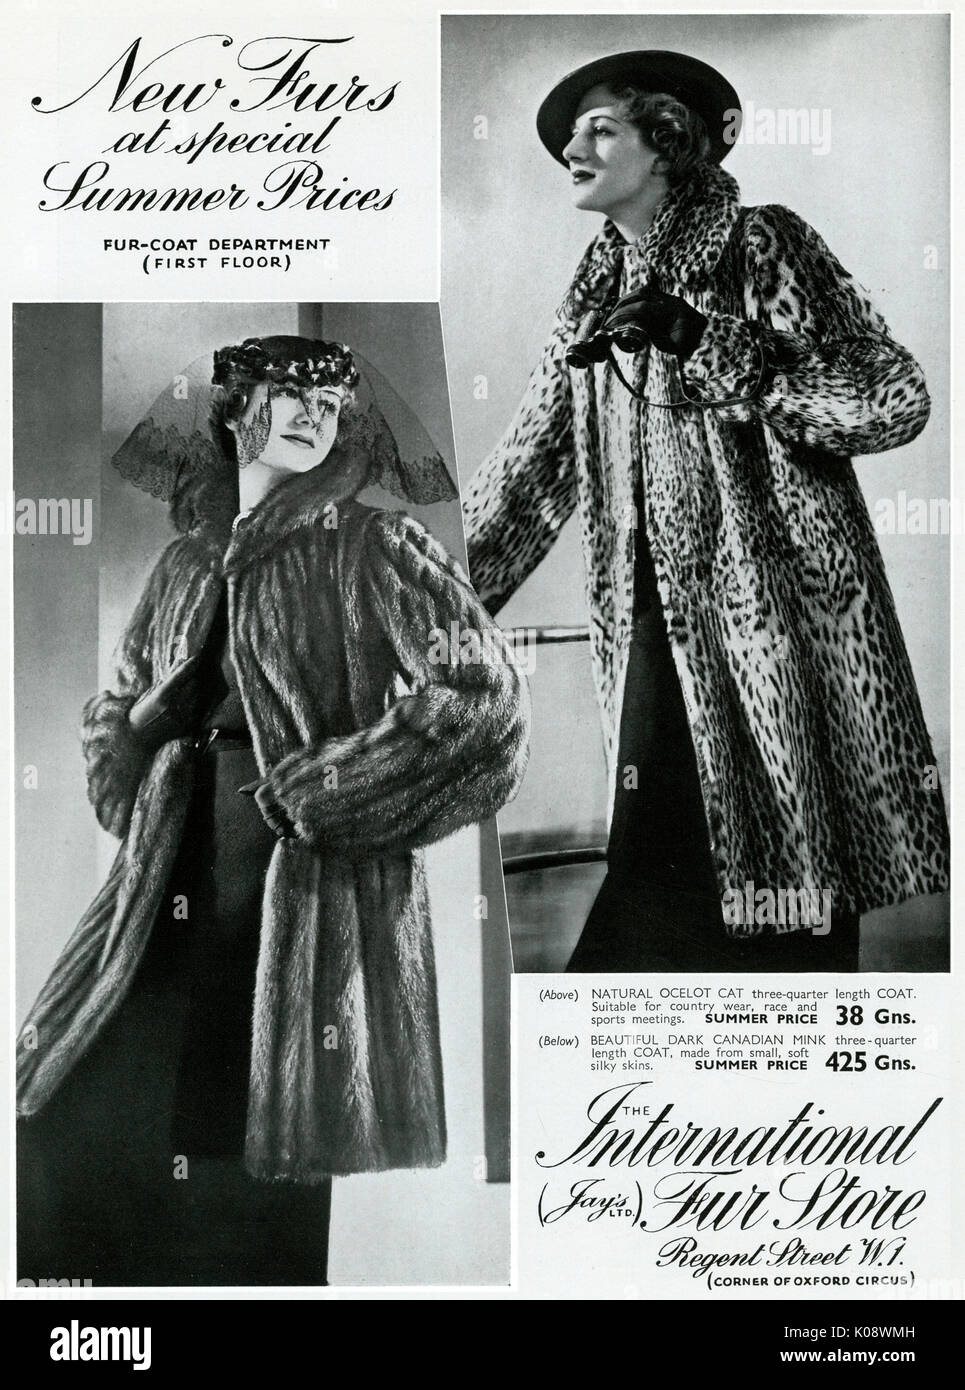 dating-vintage-fur-coats